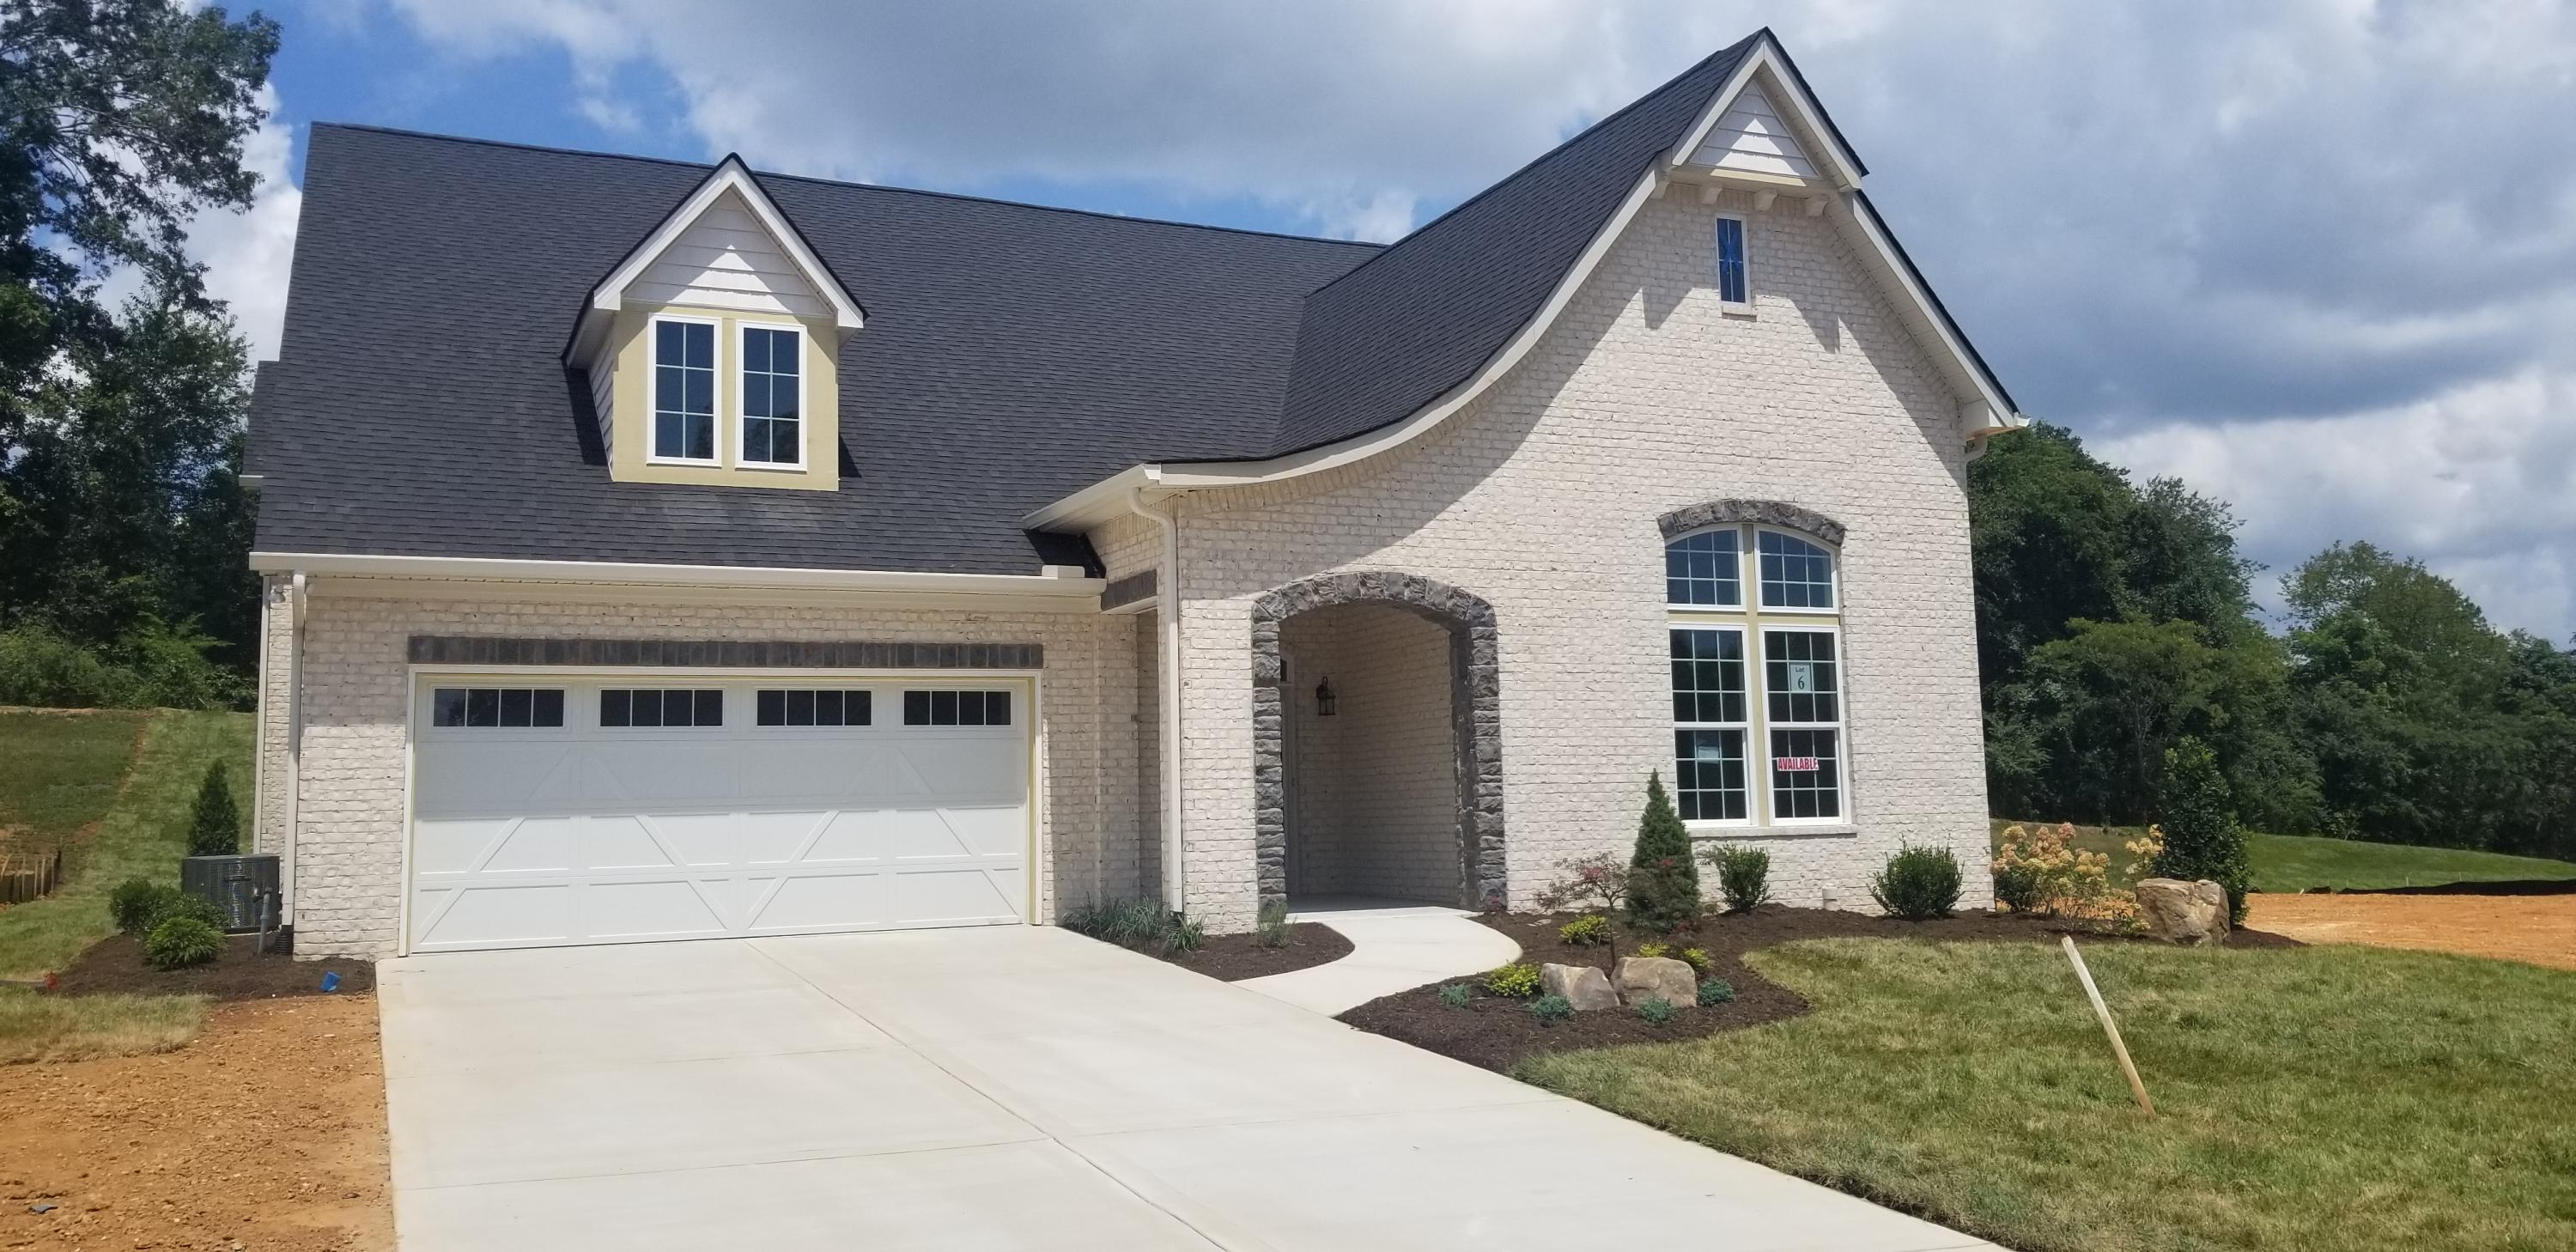 Brass Lantern Lane, Knoxville, Tennessee 37934, 3 Bedrooms Bedrooms, ,3 BathroomsBathrooms,Single Family,For Sale,Brass Lantern,1082881